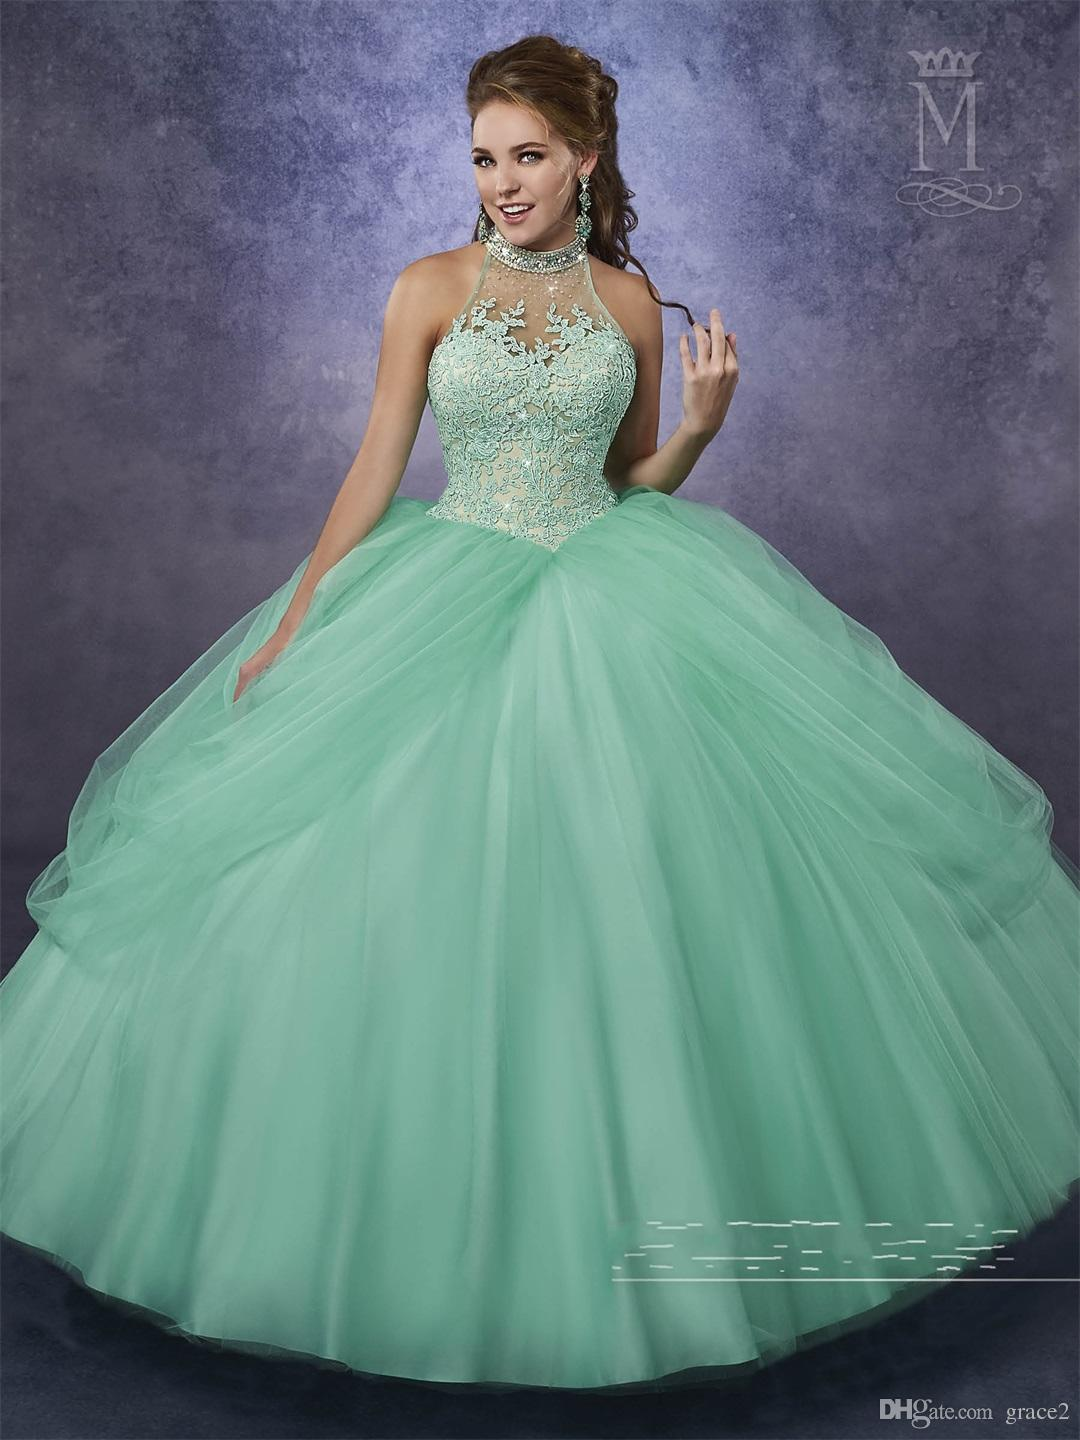 Dresses quinceanera mint images